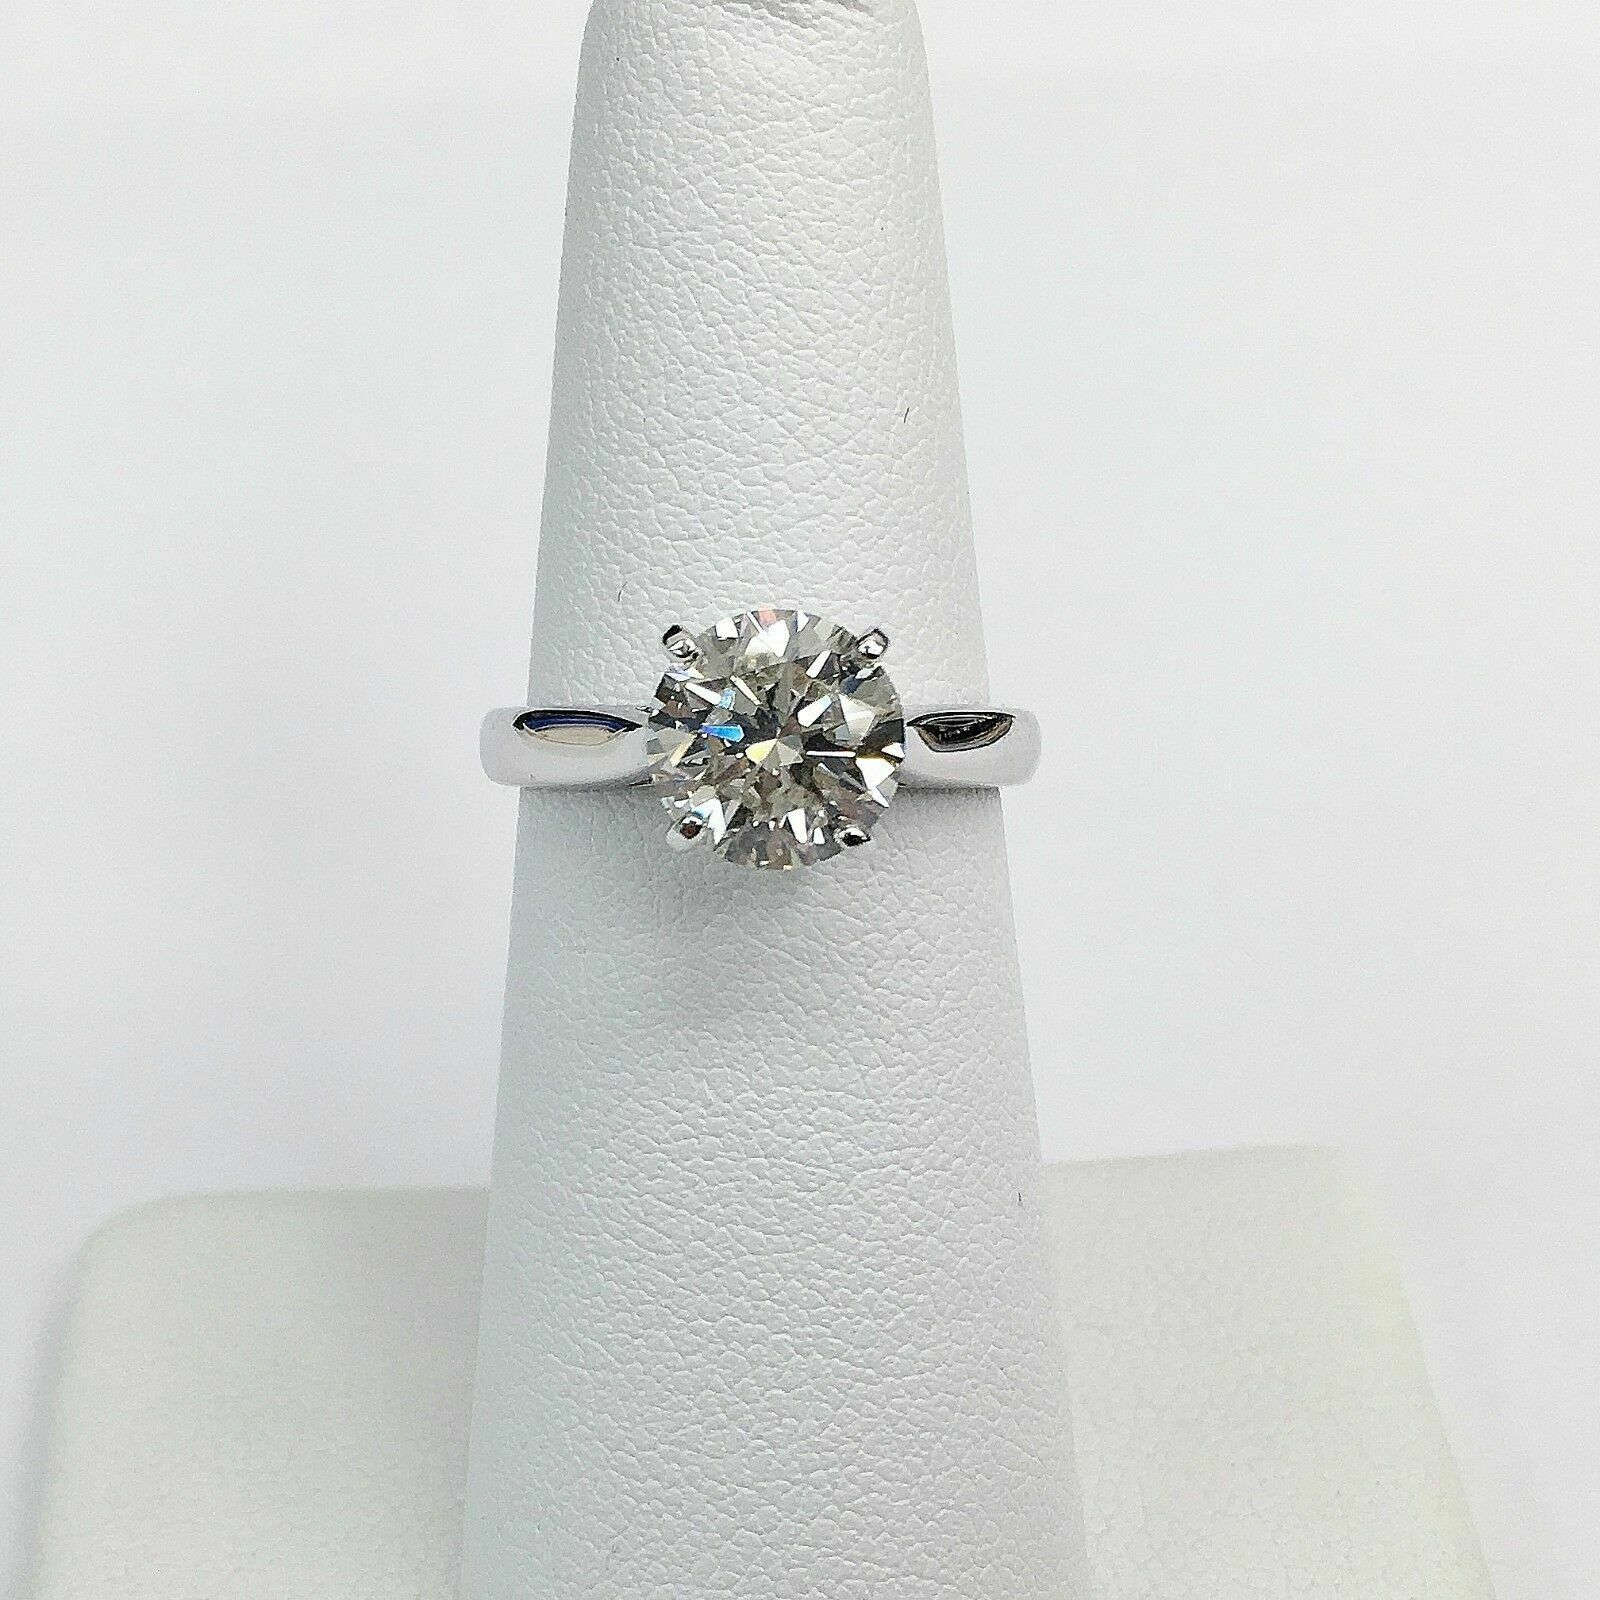 1.96 Carat Round Diamond Solitaire Wedding/Engagement Ring EGLUSA G-H SI2